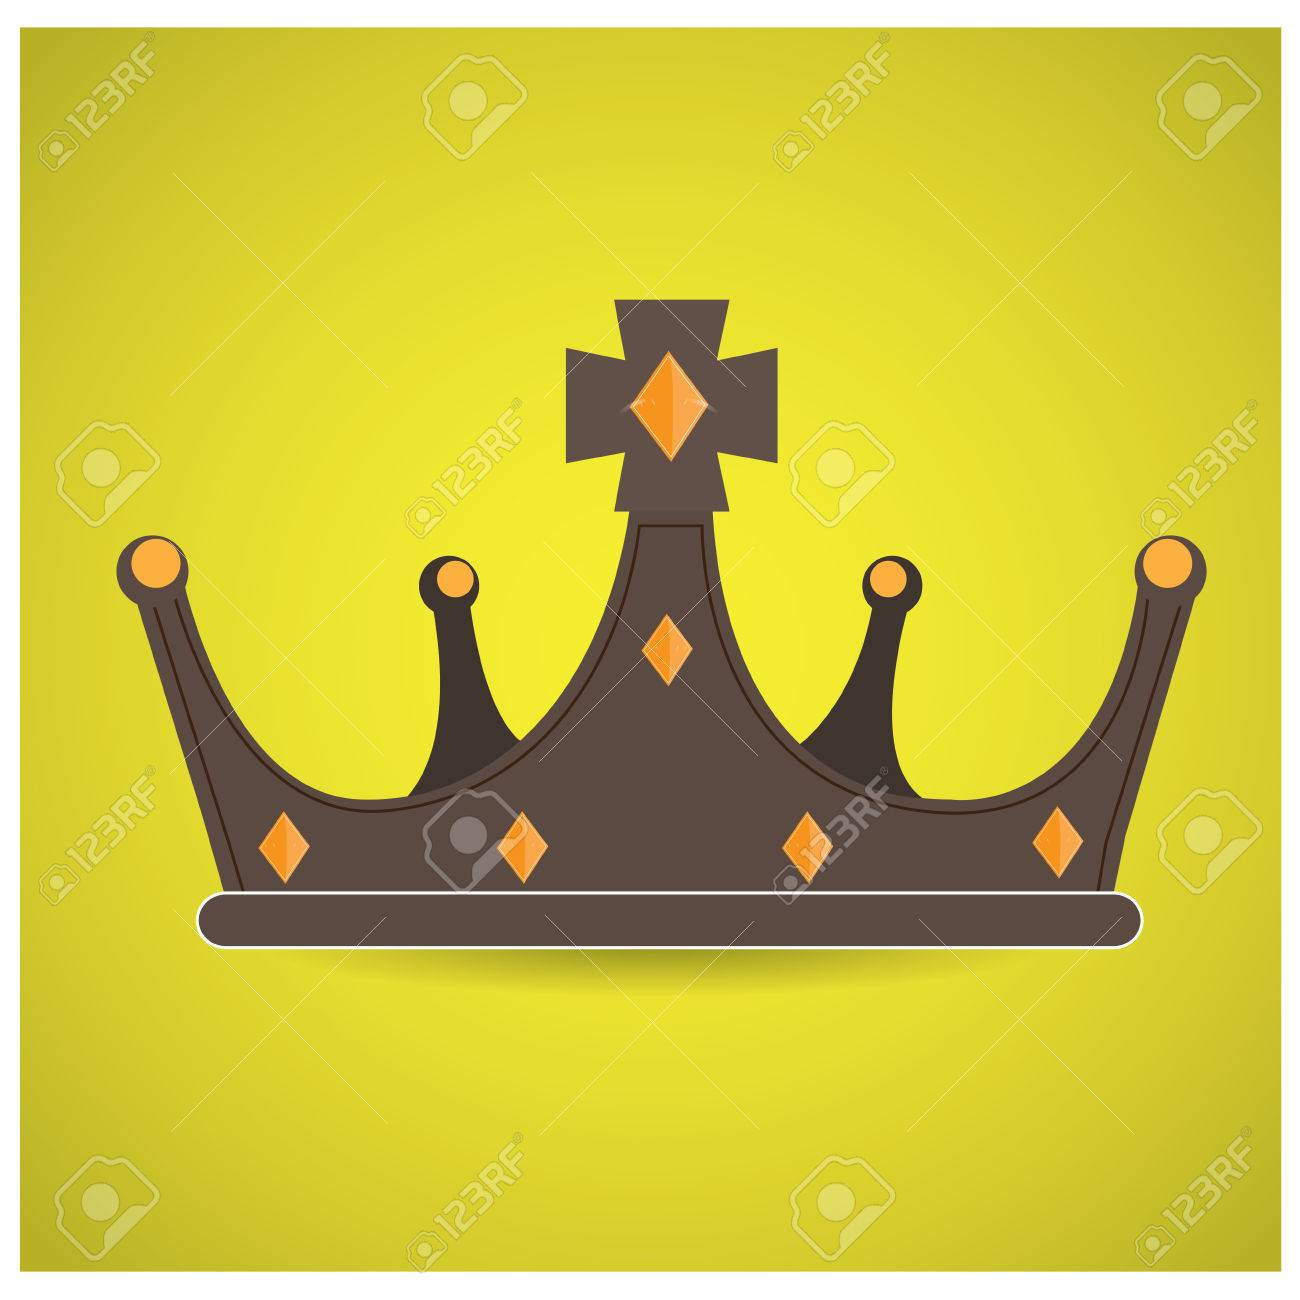 1300x1300 Isolated Royal Crown On A Yellow Background Royalty Free Cliparts